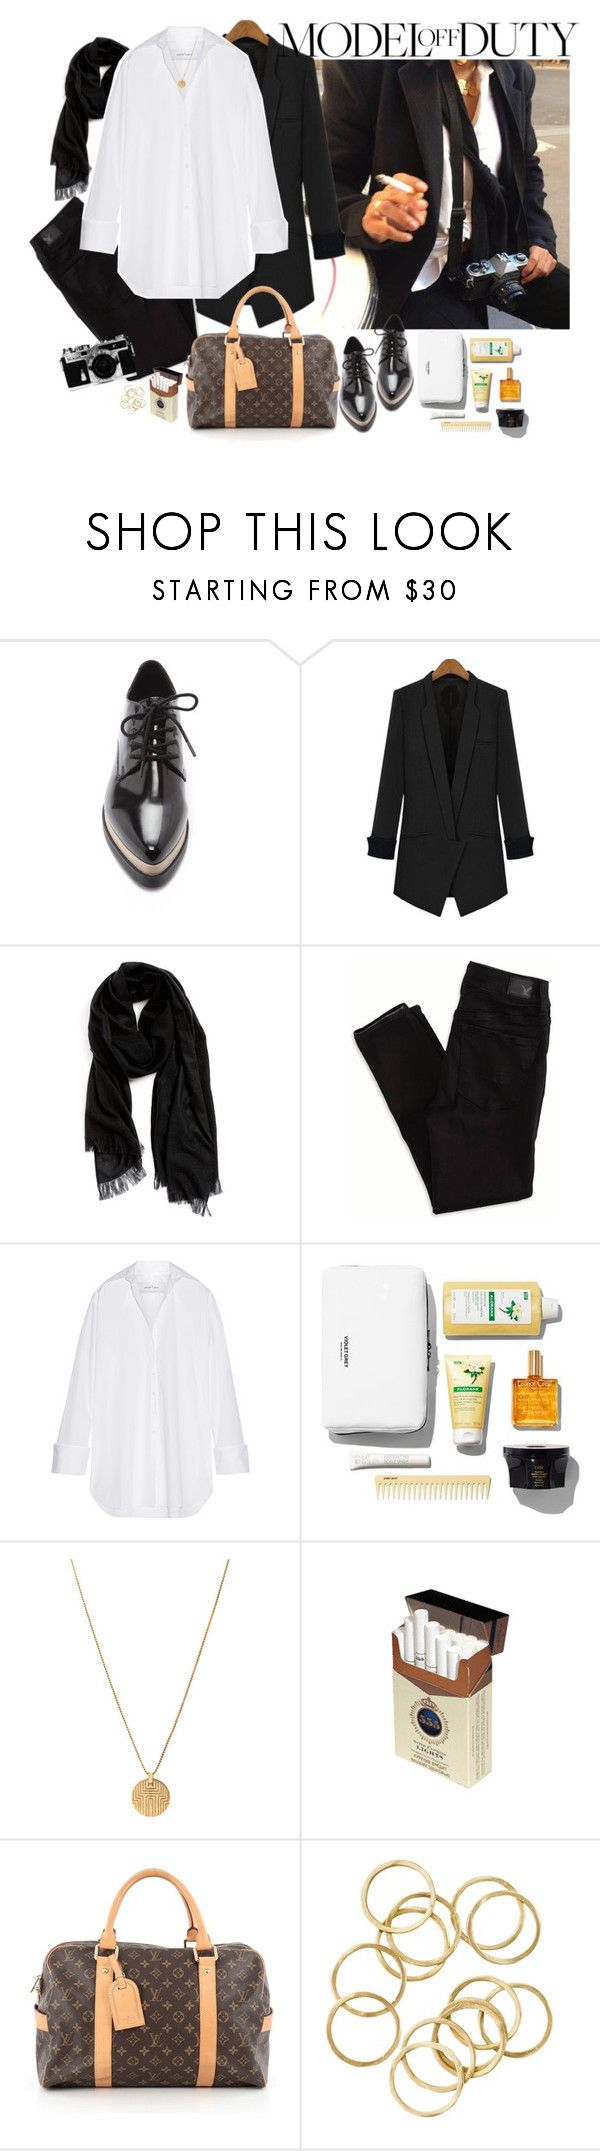 """""""Model Off Duty"""" by martaveira ❤ liked on Polyvore featuring Forever 21, Nordstrom, American Eagle Outfitters, Marques'Almeida, Nikon, Louis Vuitton and modeloffduty"""